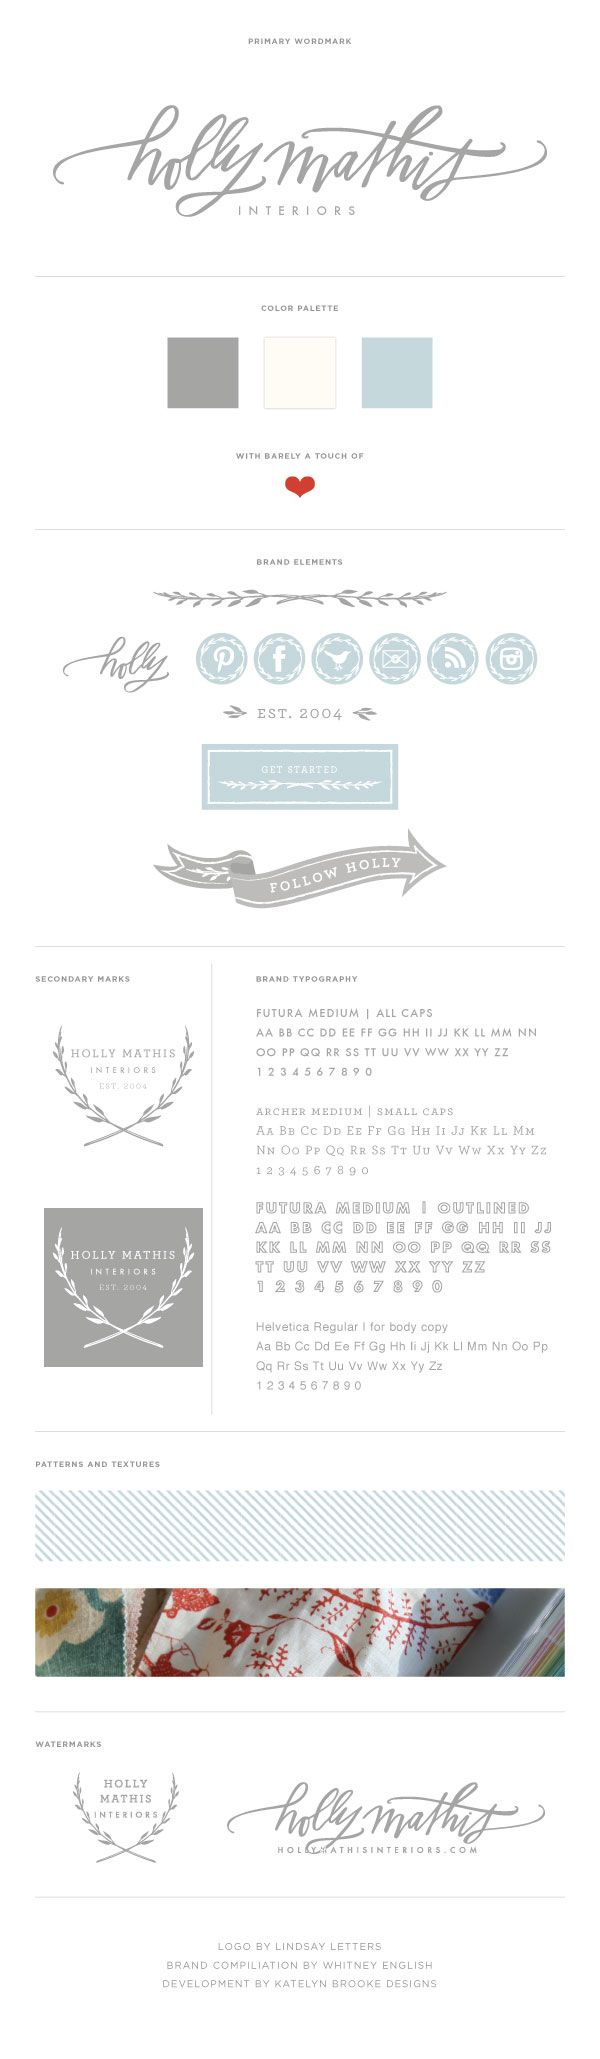 The Holly Mathis Interiors Brand Board